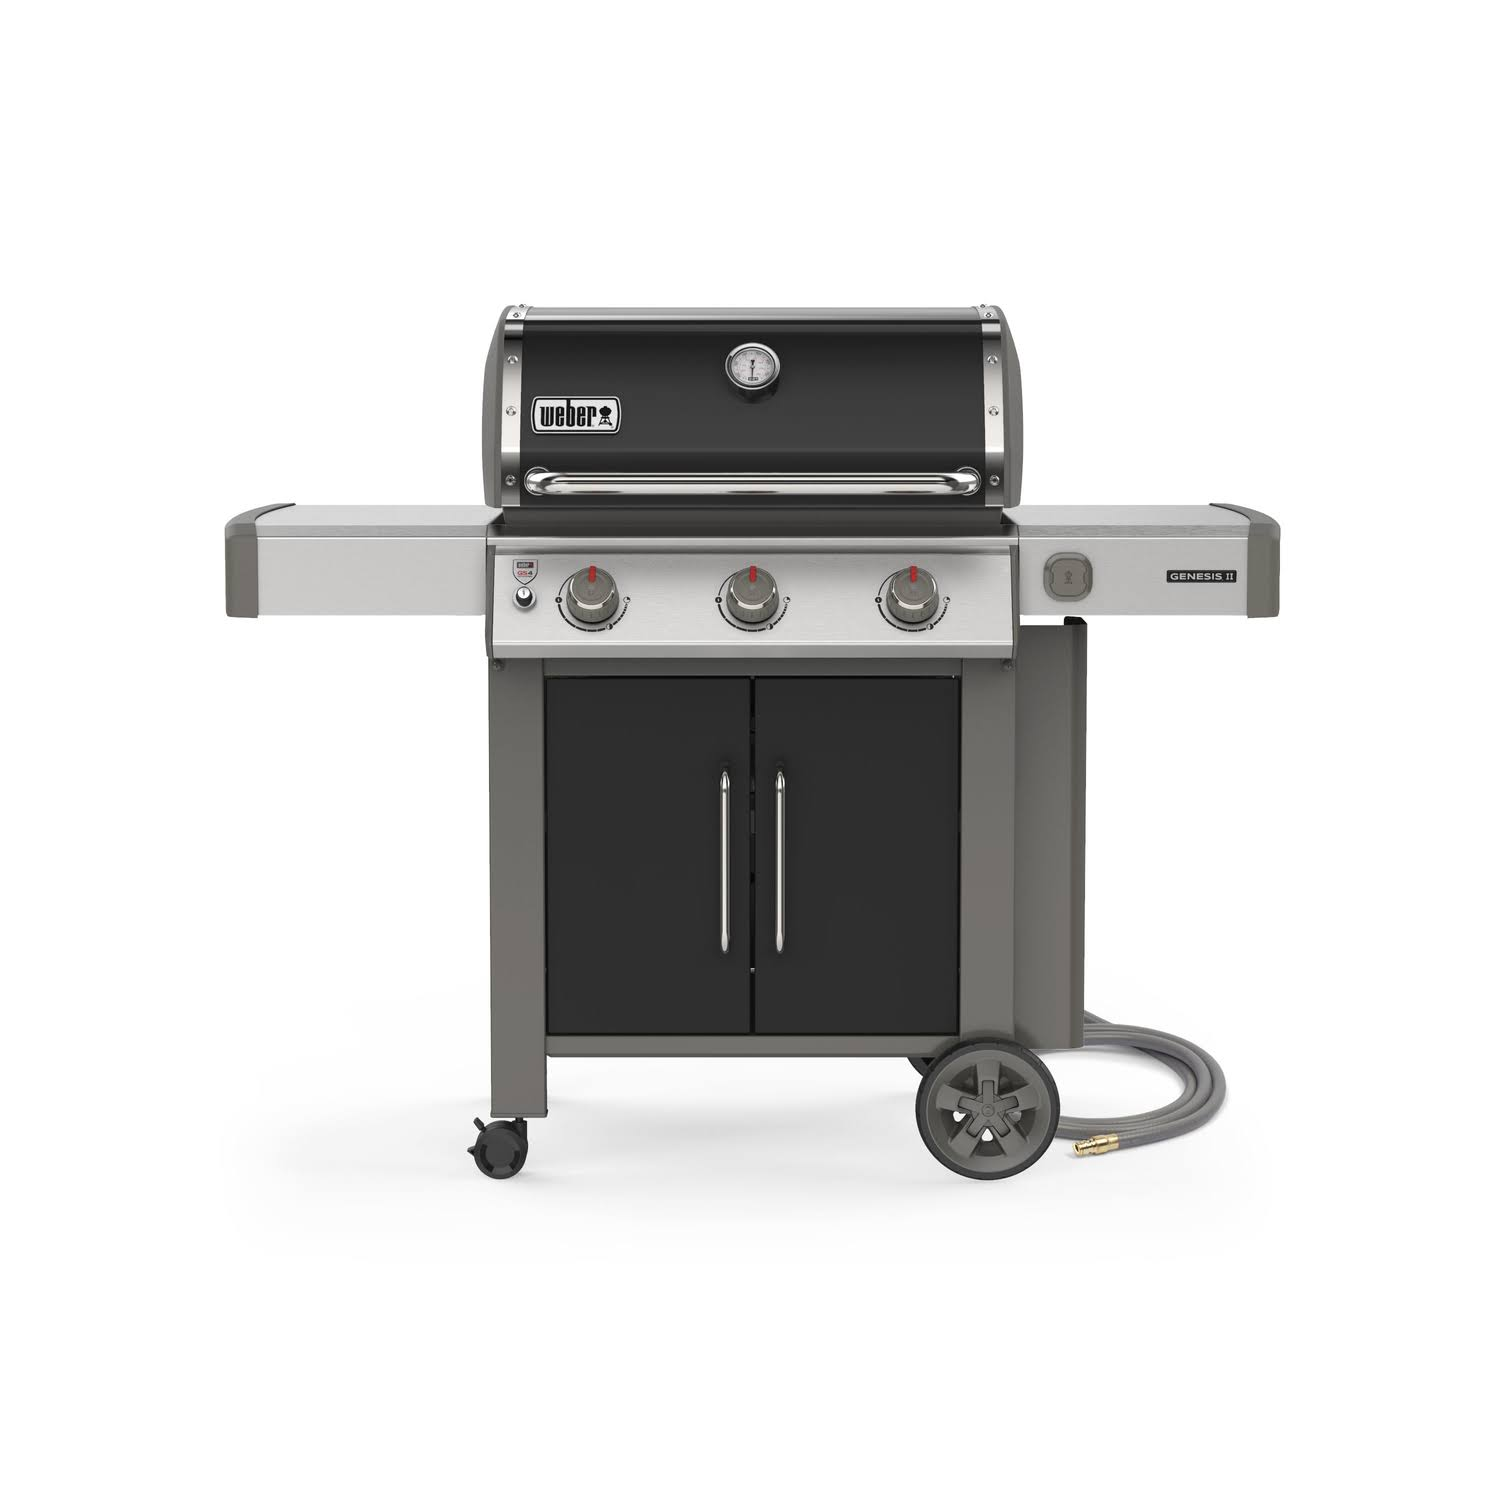 Weber Genesis Ii E-315 Natural Gas Grill - Black